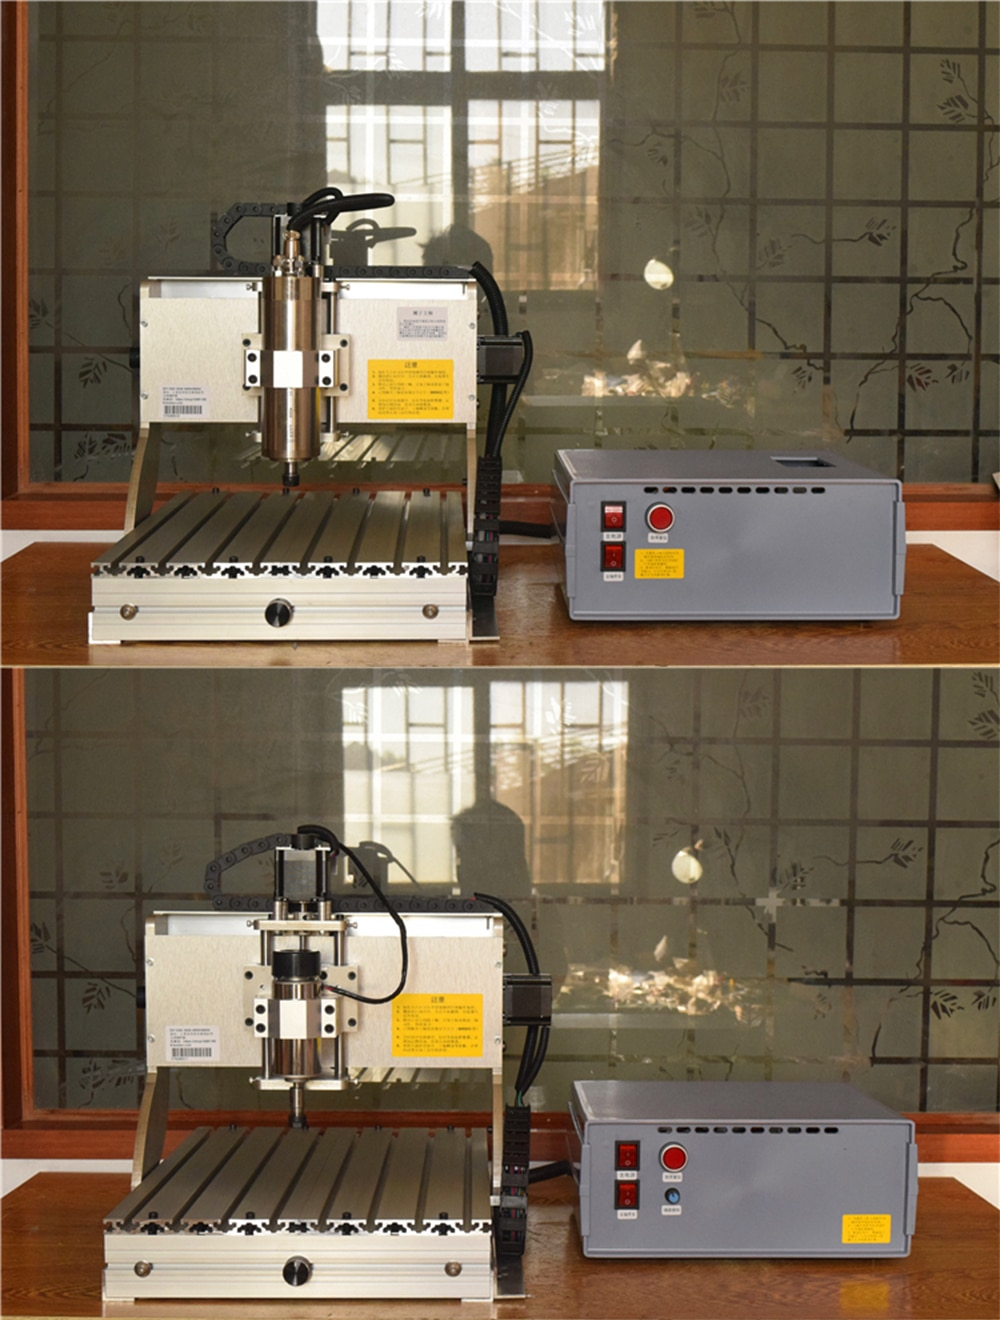 CNC 3040 400W/800W Spindle 3 Axis CNC Router Engraving PCB Milling Cutting DRILLING Machine 220V enlarge